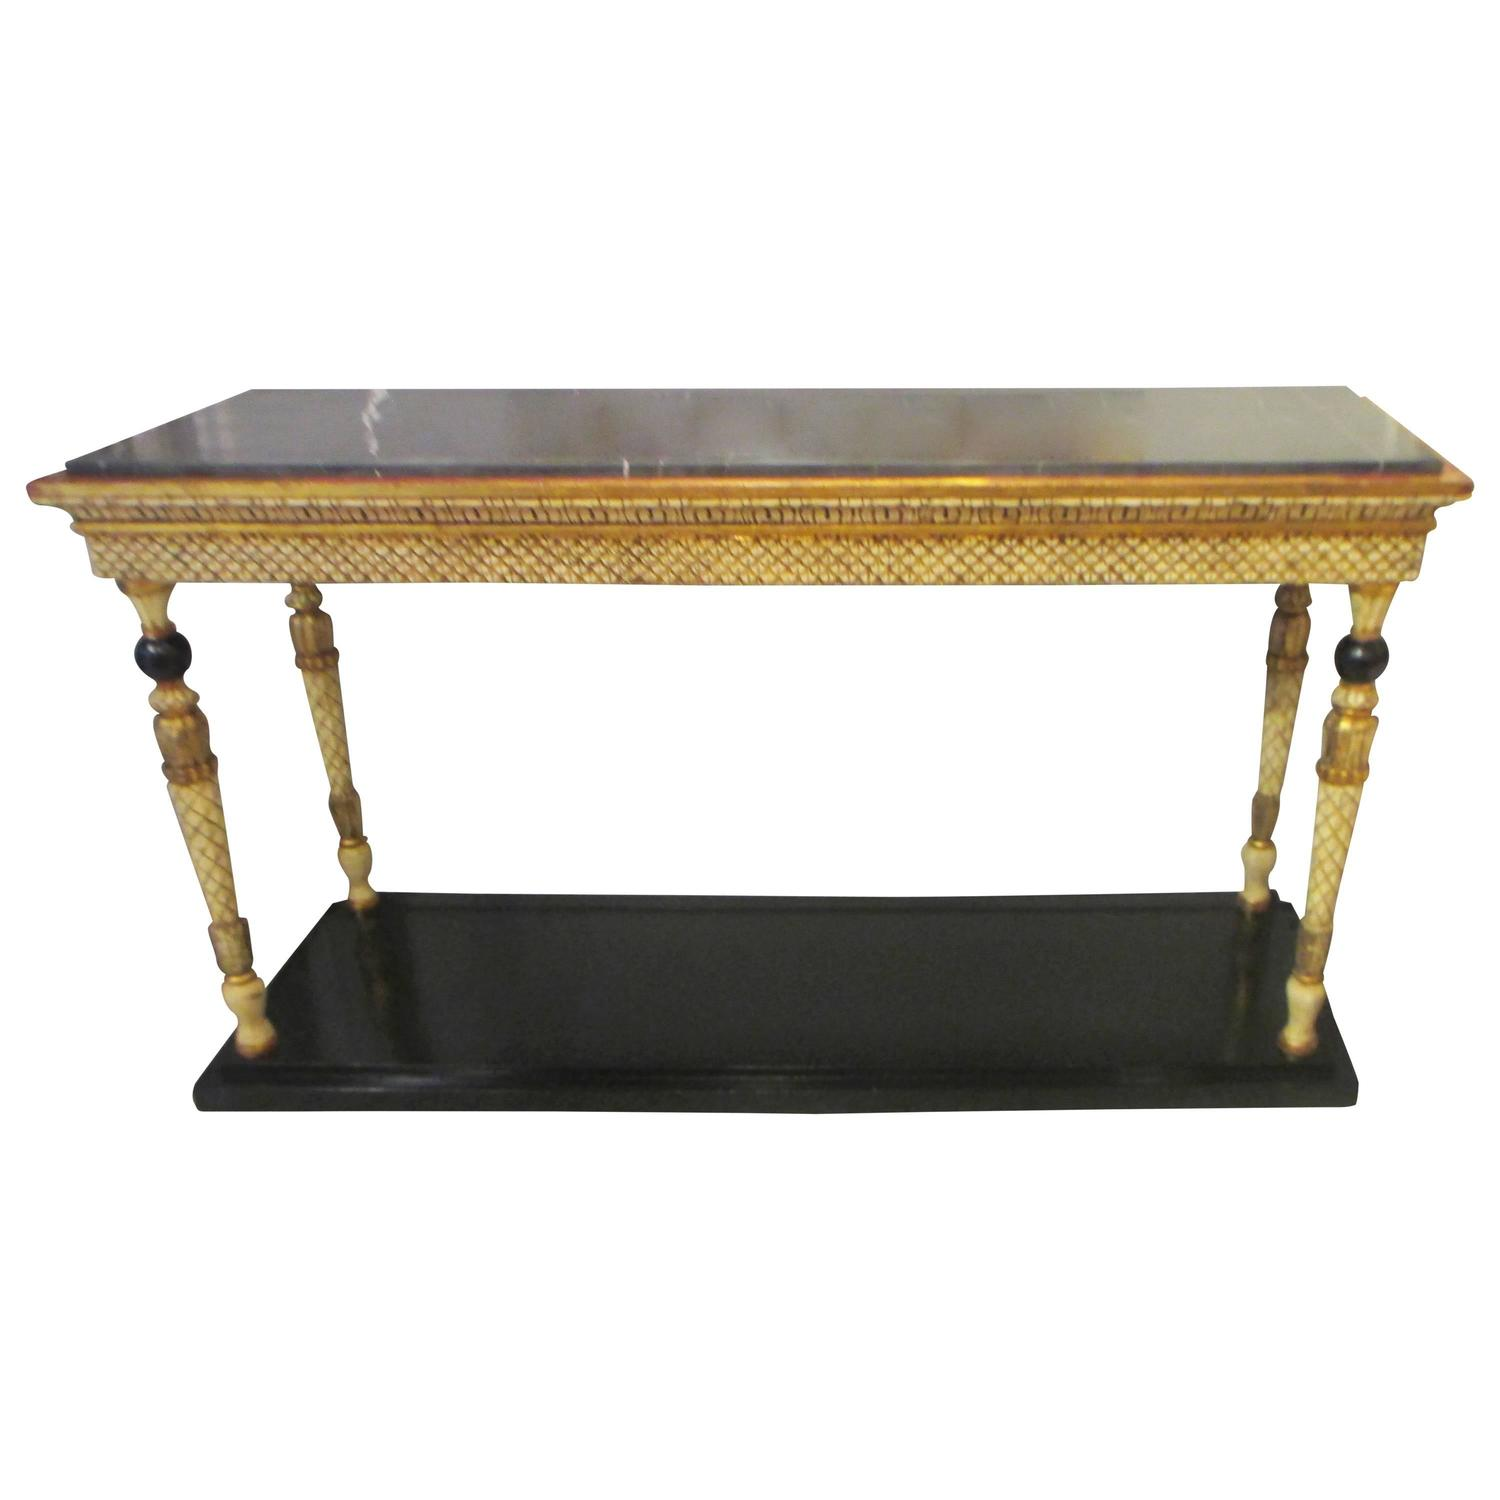 Unique maison jansen signed marble top console for sale at for Unique console tables for sale